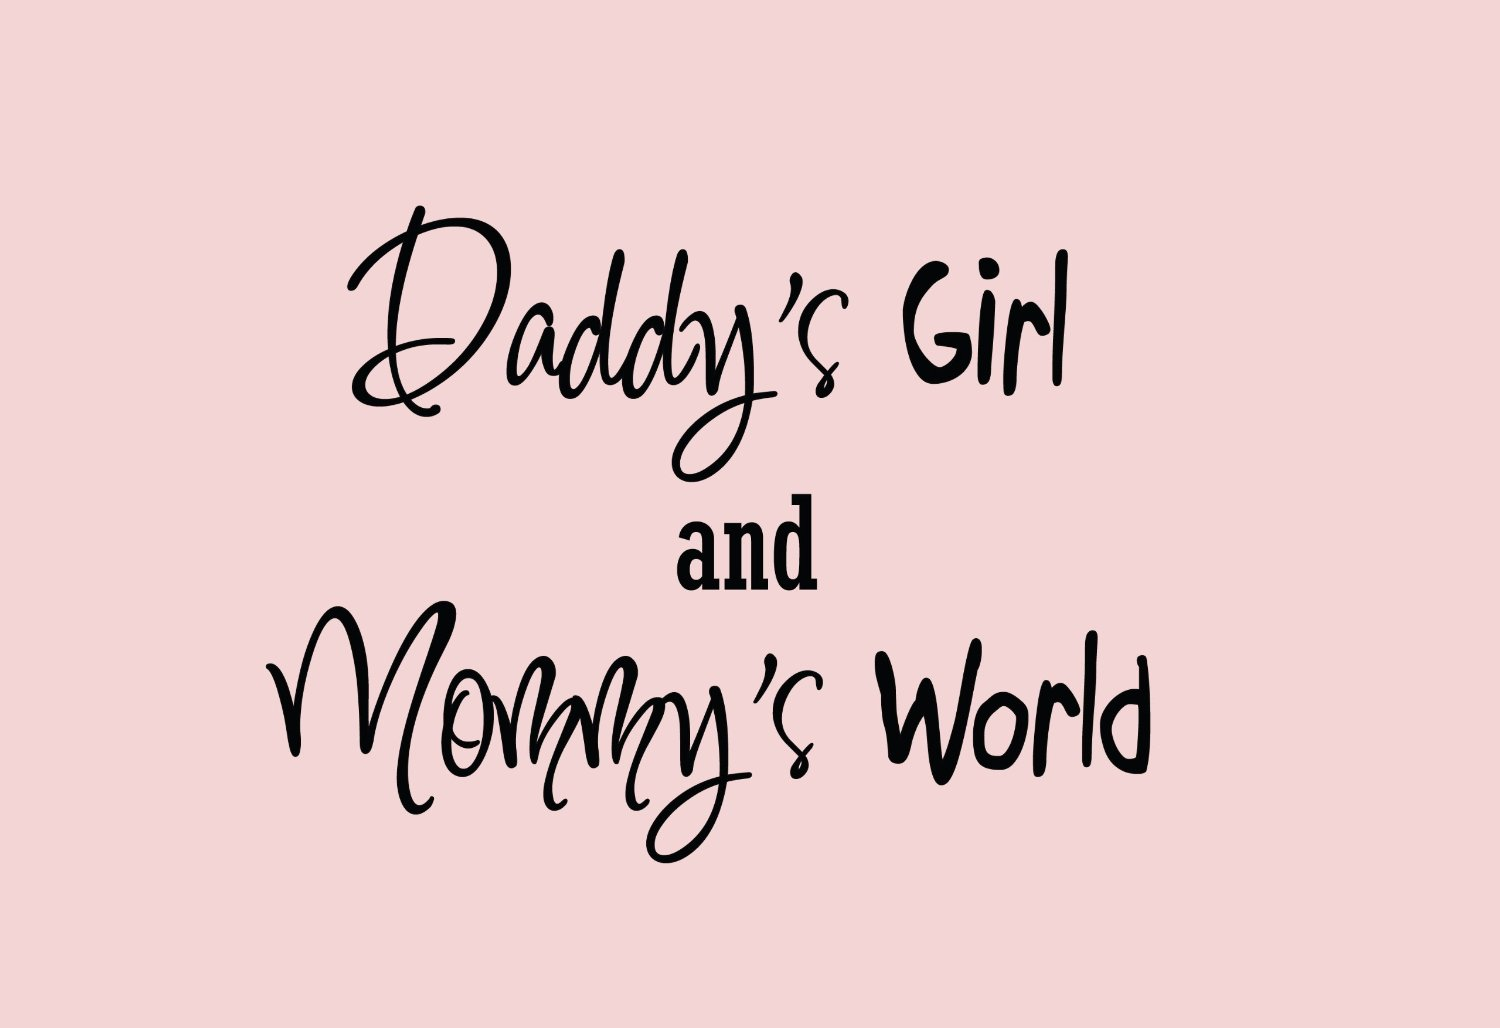 baby and dad quotes - photo #24